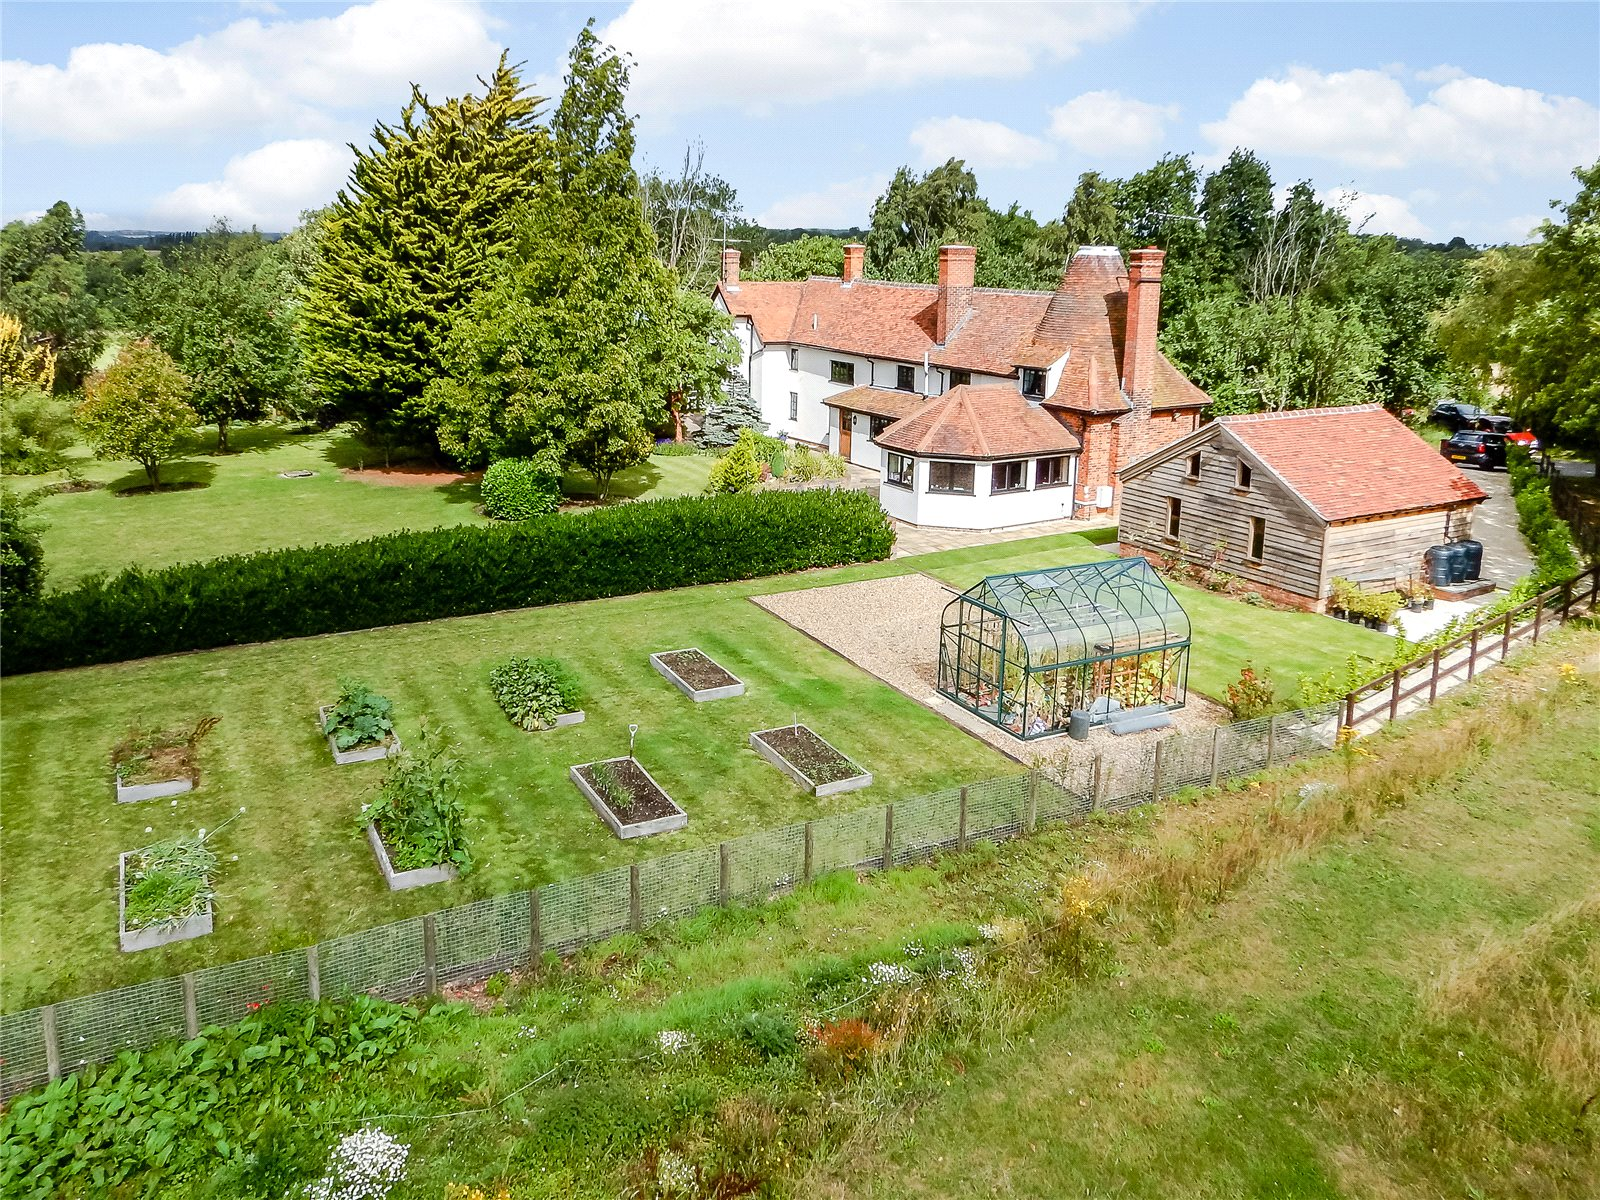 Single Family Home for Sale at Mumfords Hill, Blackmore End, Braintree, Essex, CM7 Braintree, England